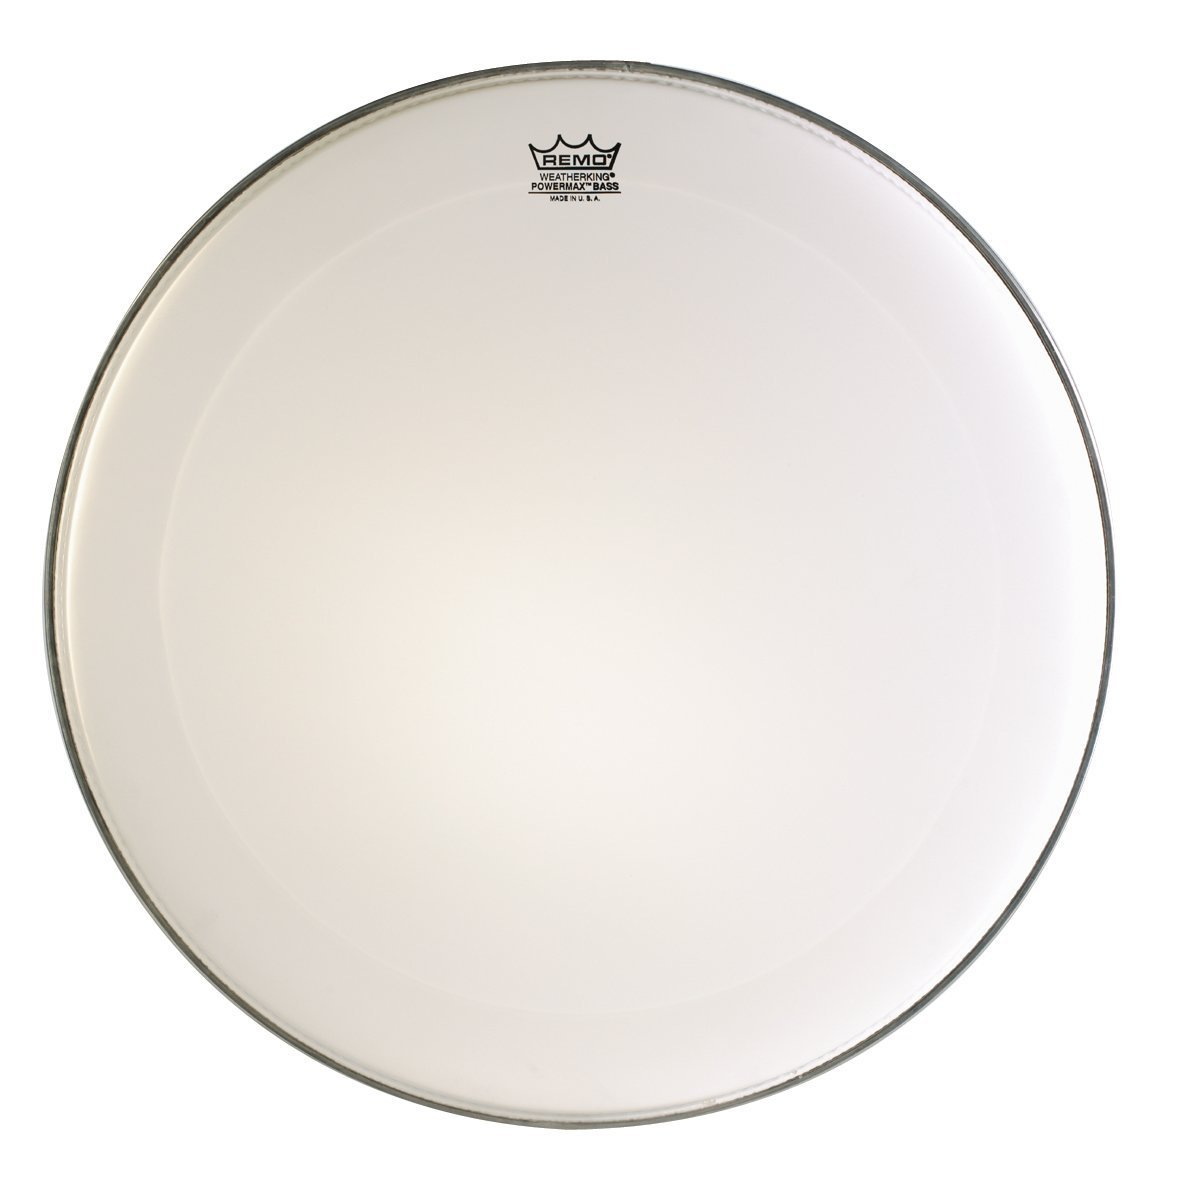 Remo PM1022-MP PowerMax Ultra Marching Bass Drum Head (22-Inch) KMC Music Inc